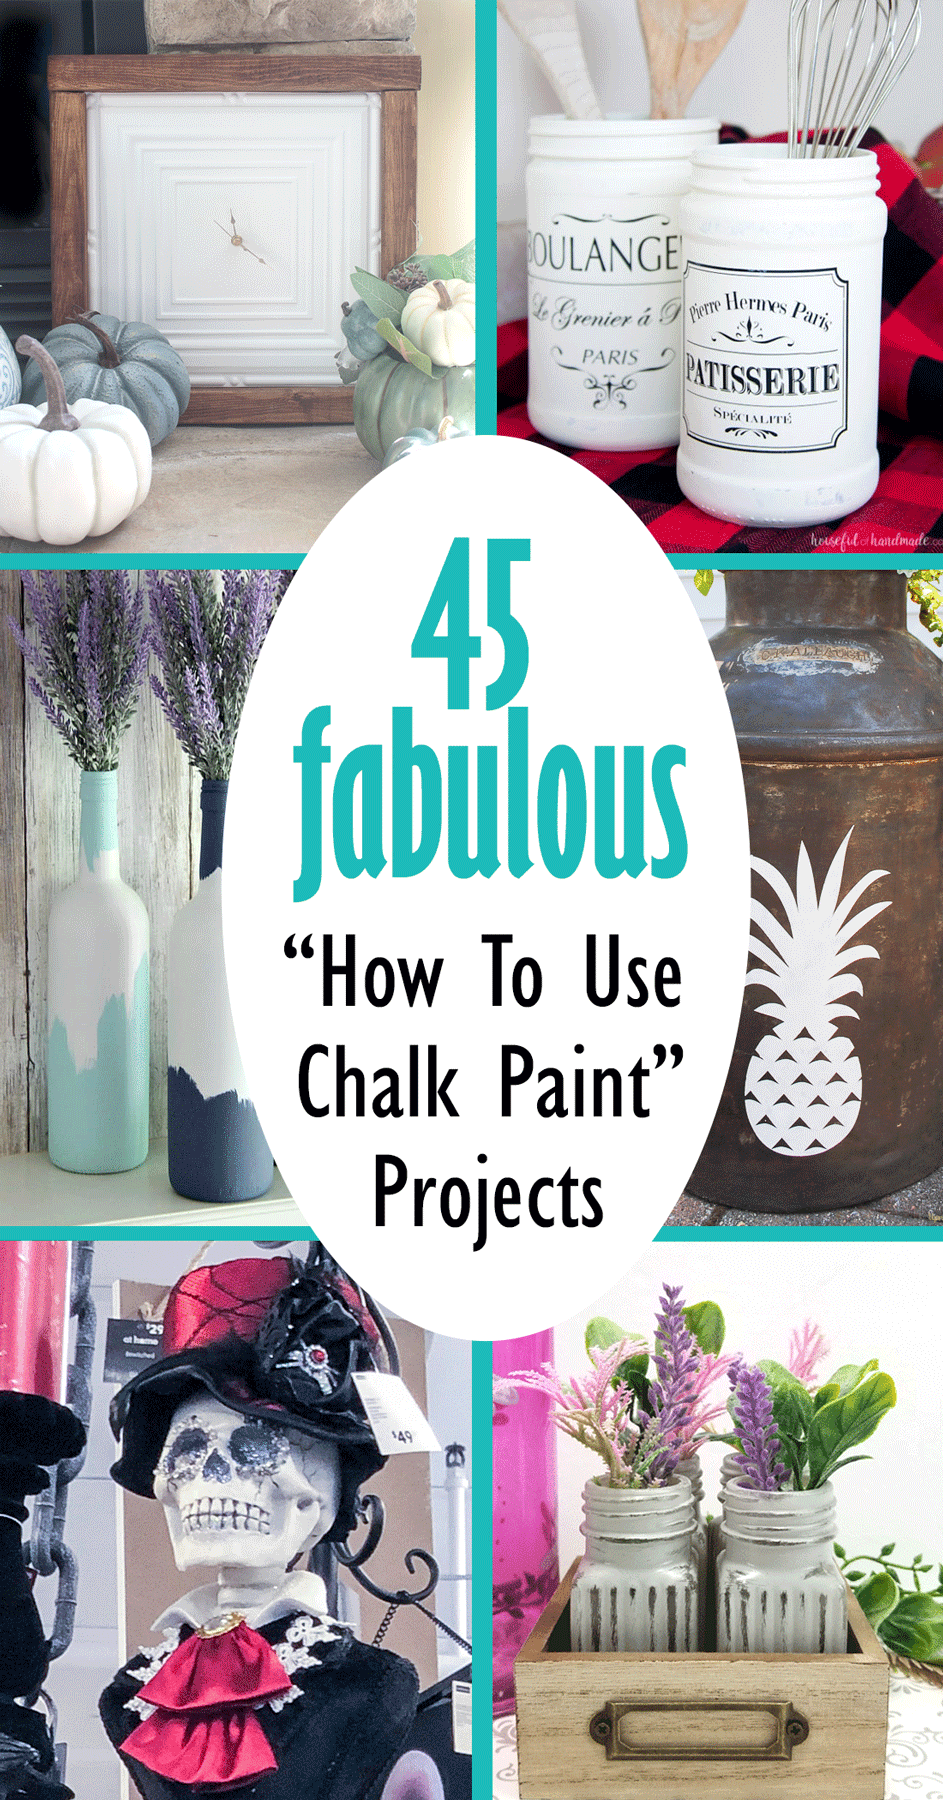 Six of the 45 fabulous projects from the round up of how to use chalk paint projects.